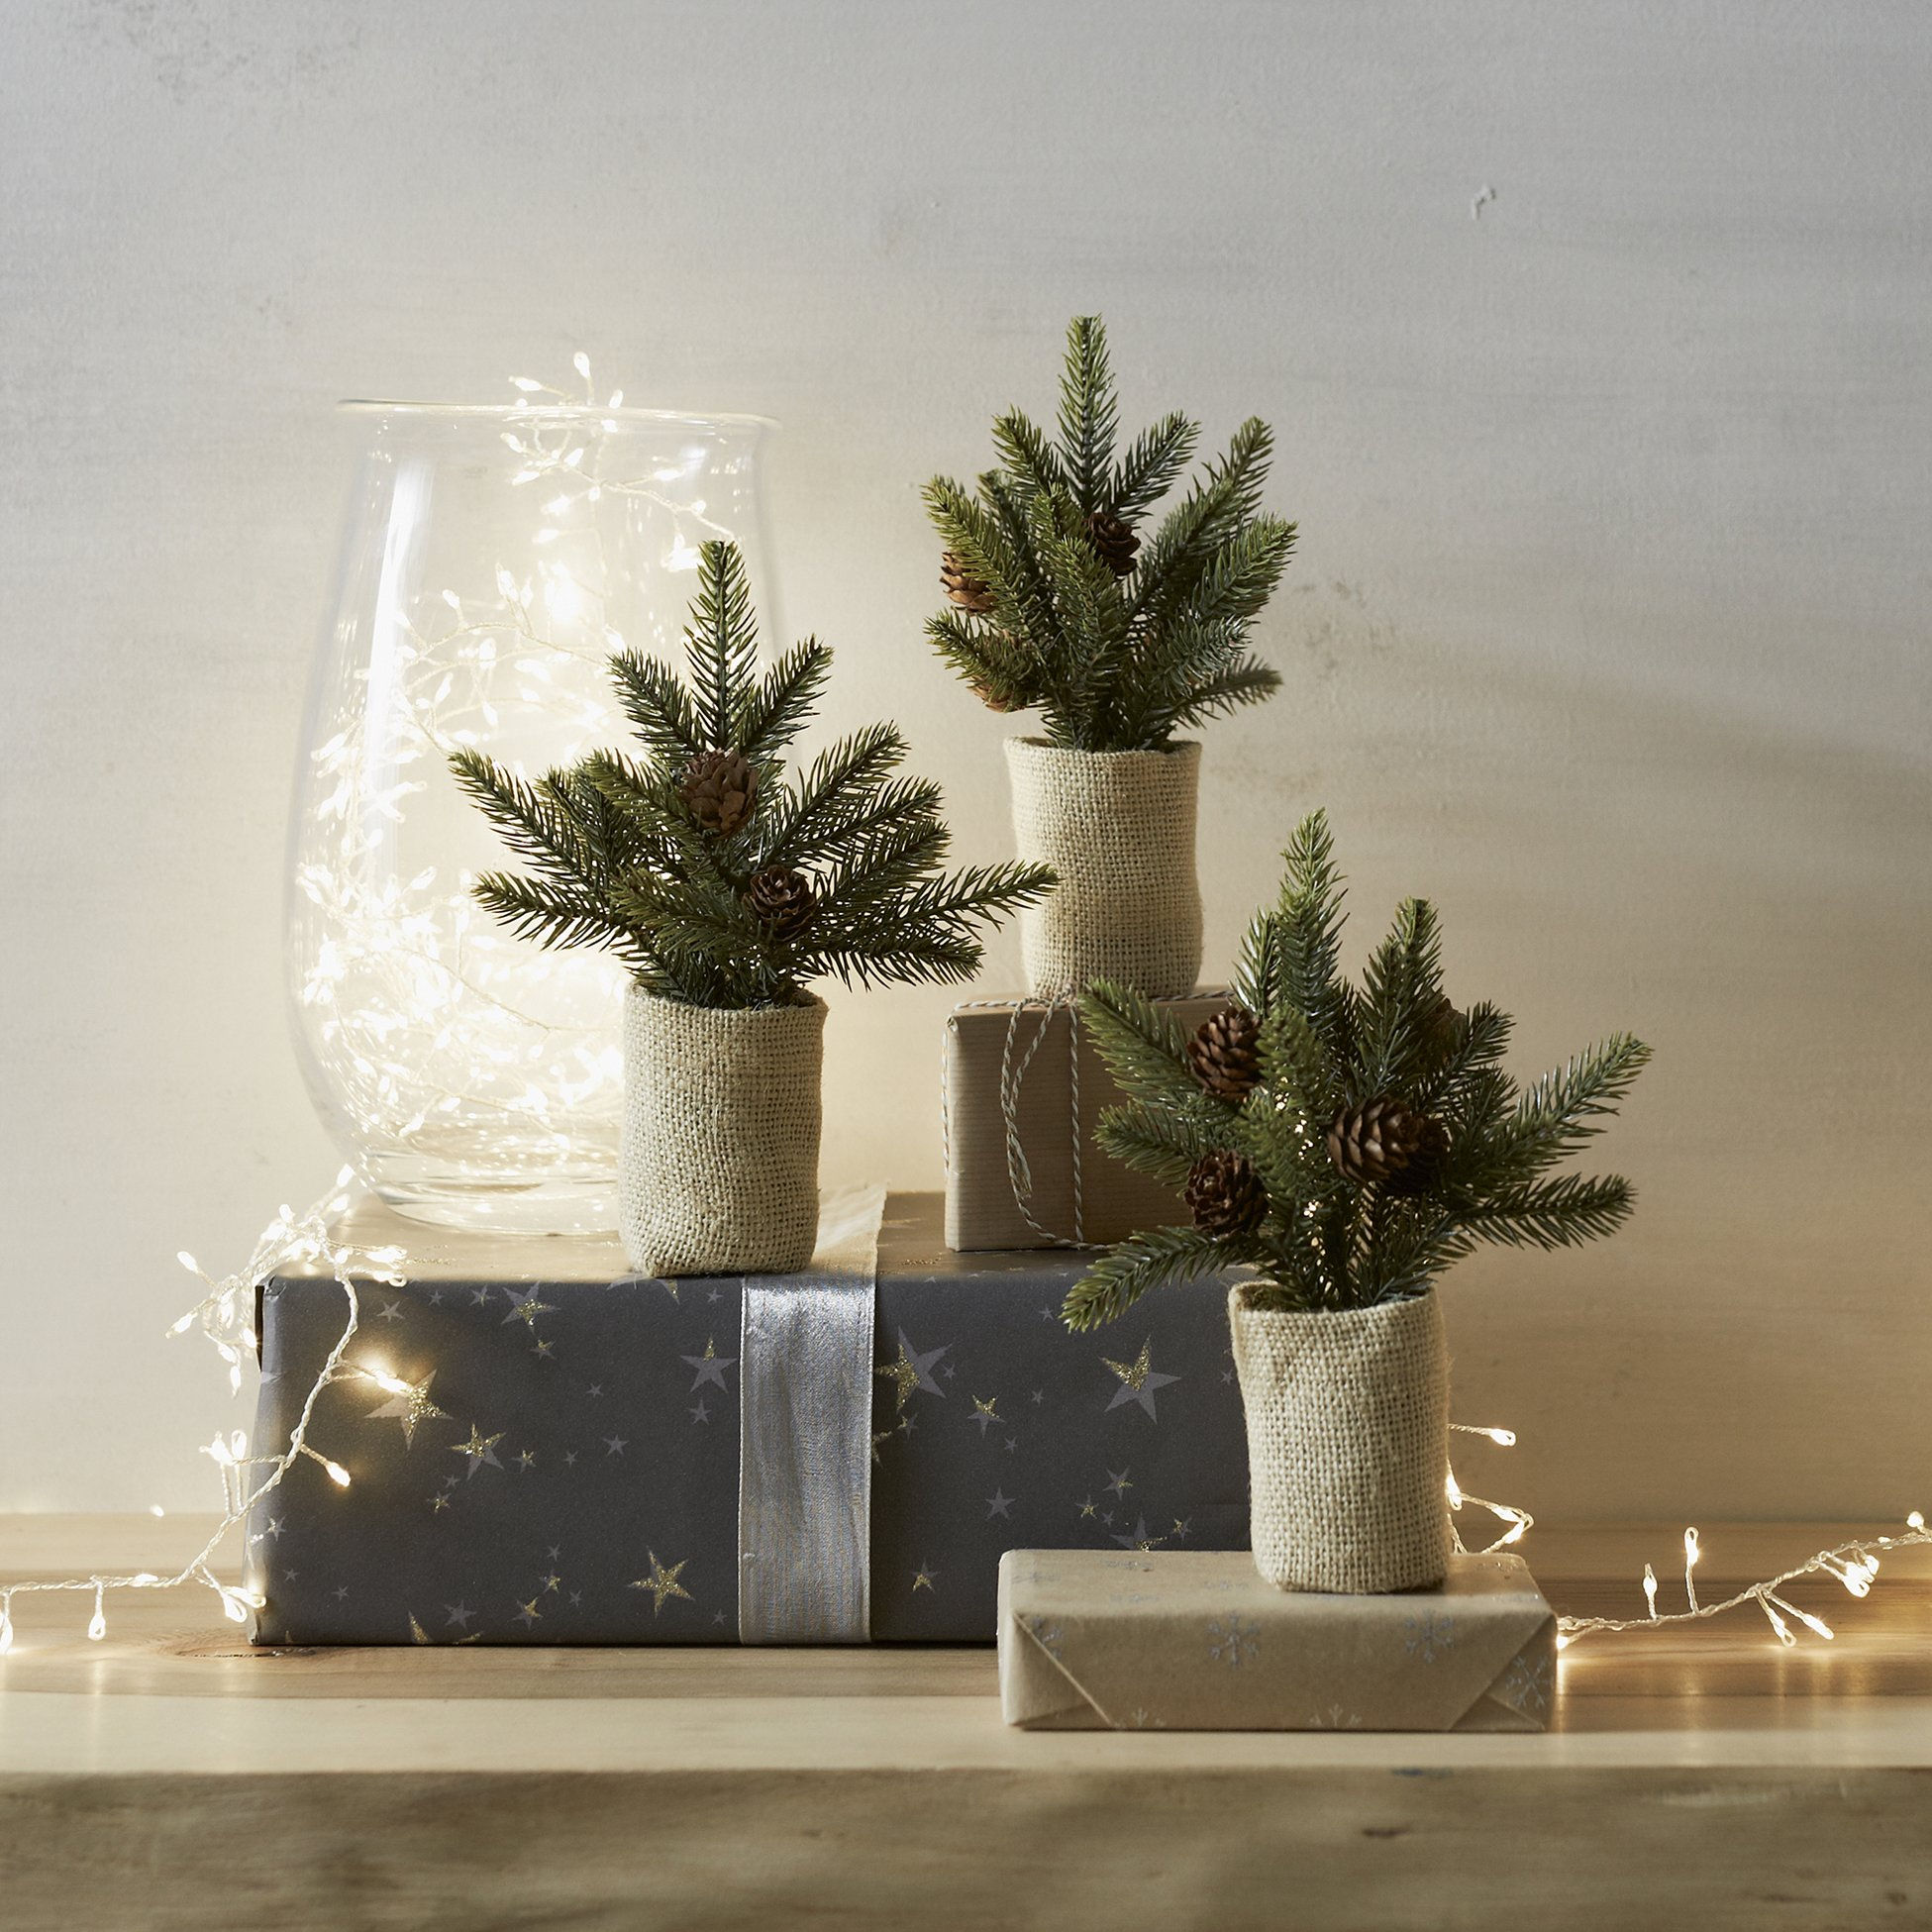 Set of 3 mini Christmas trees from The White Company London.